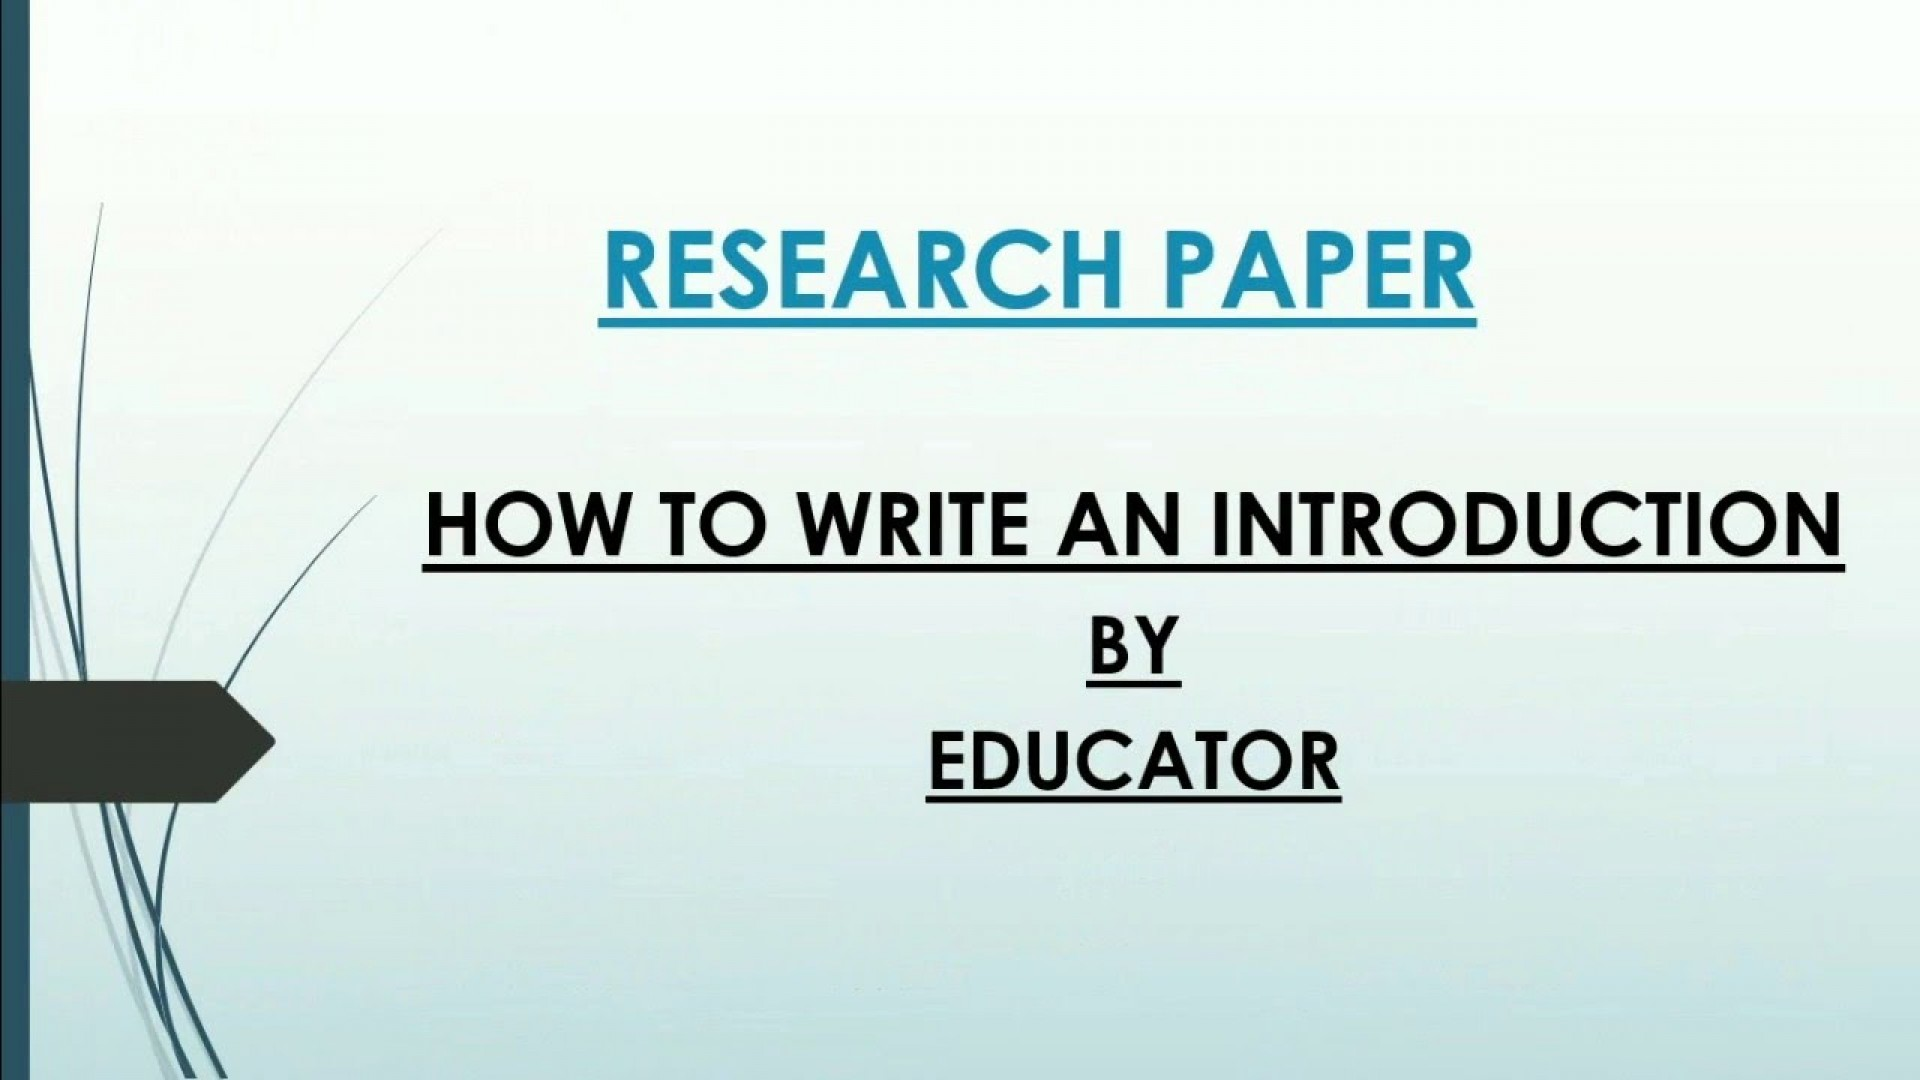 010 Research Paper How To Write Good Youtube Remarkable A In Apa 1920